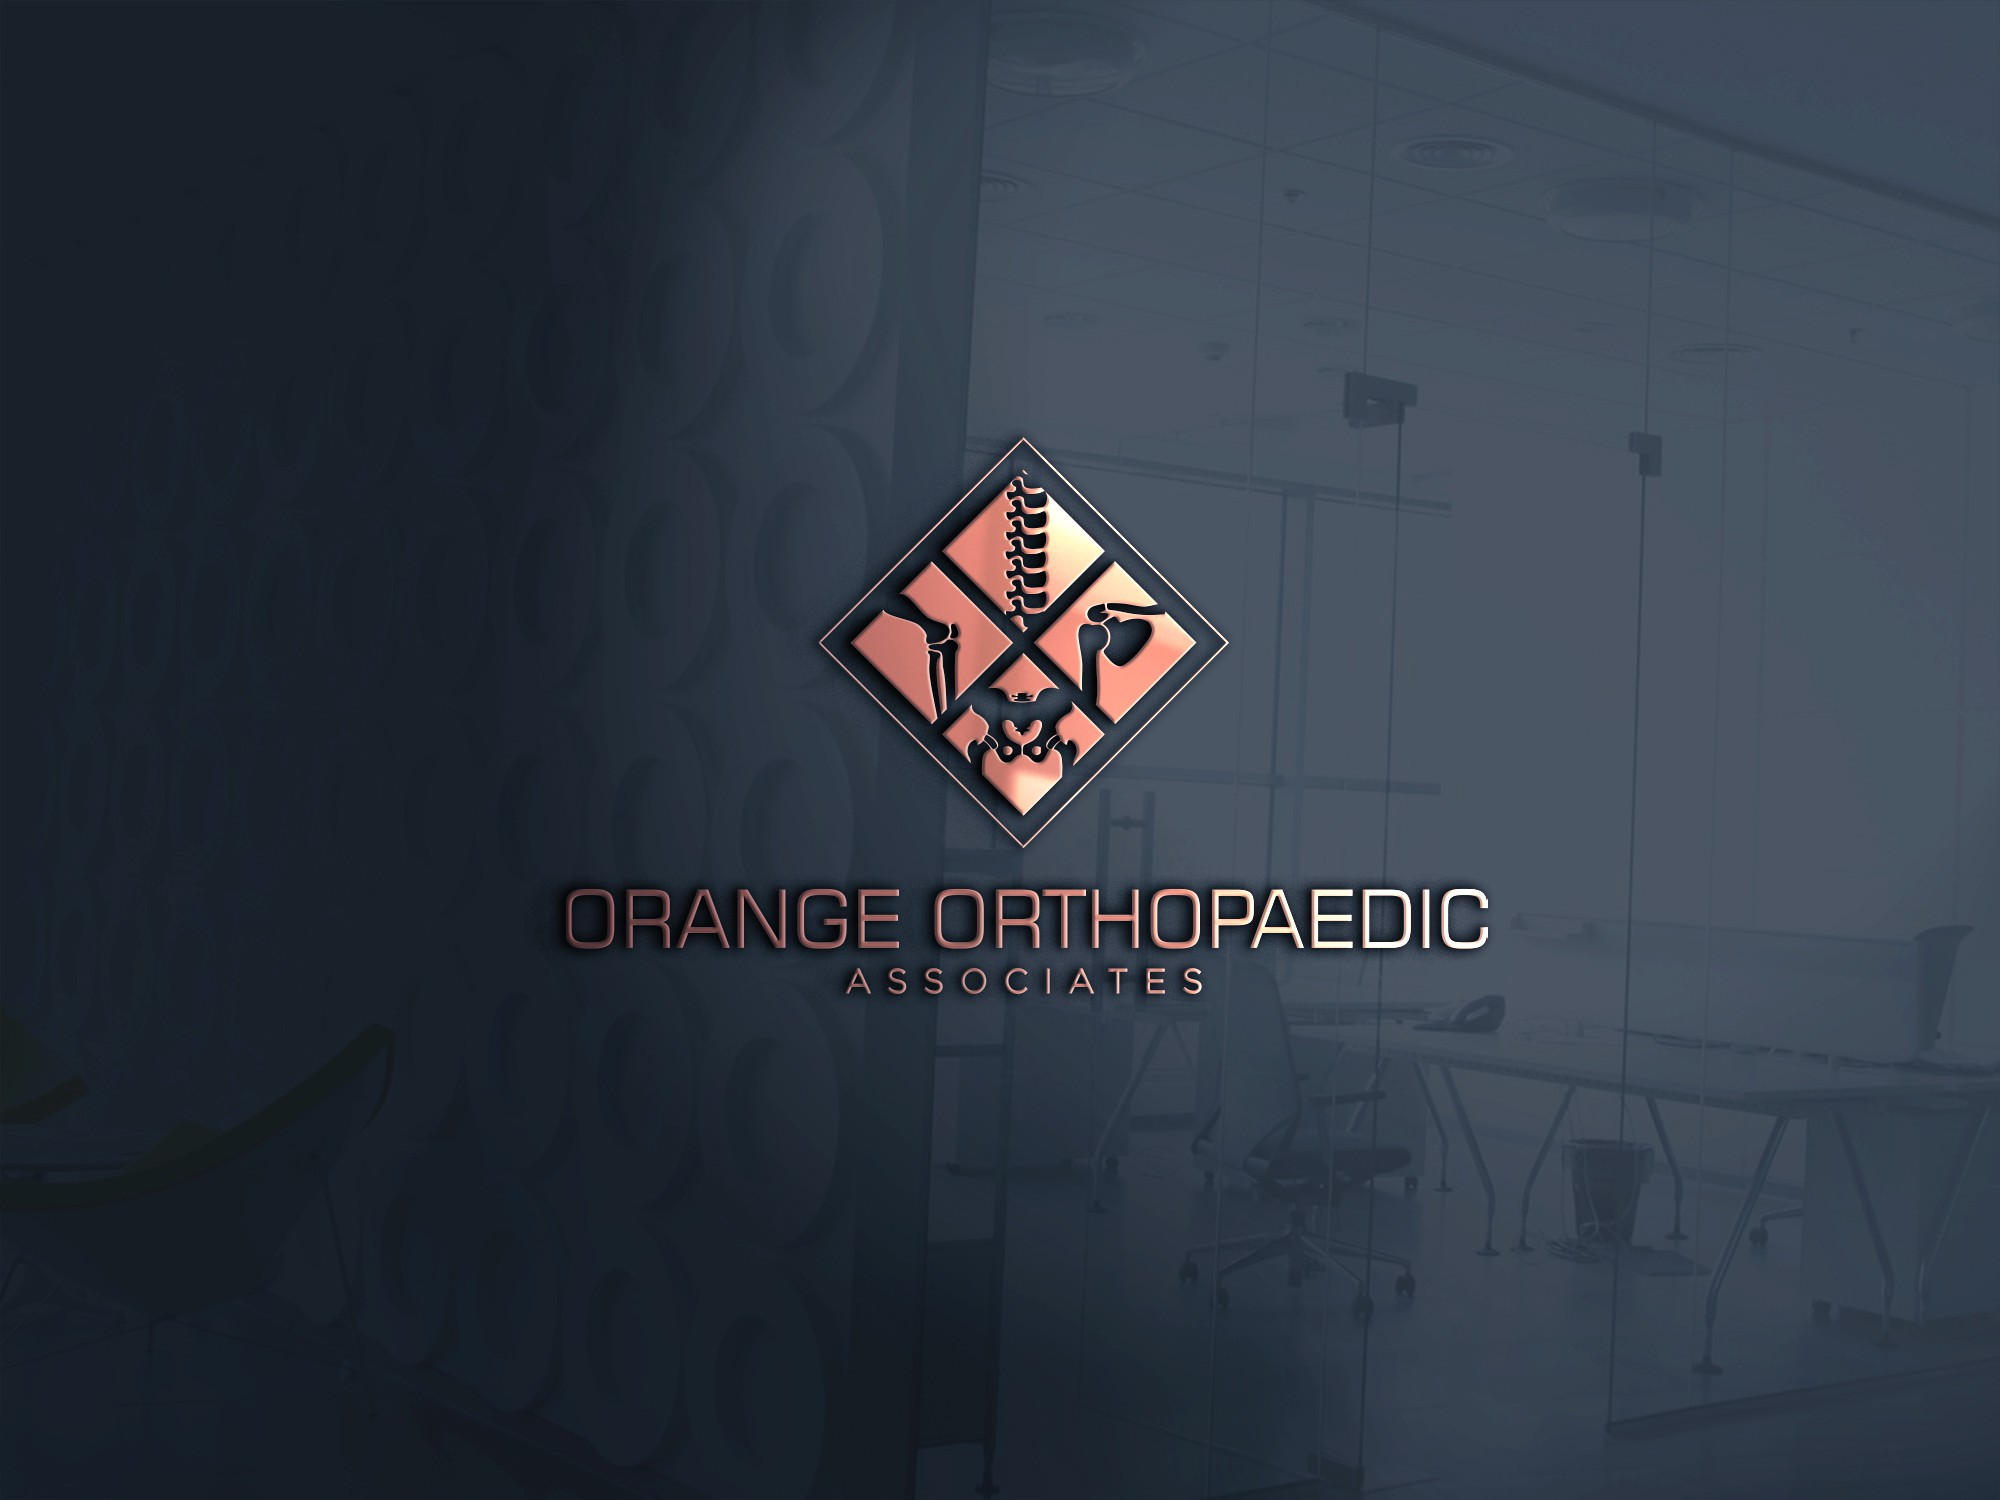 Orthopaedic Surgical Practice looking to re-boot and hit the market hard!